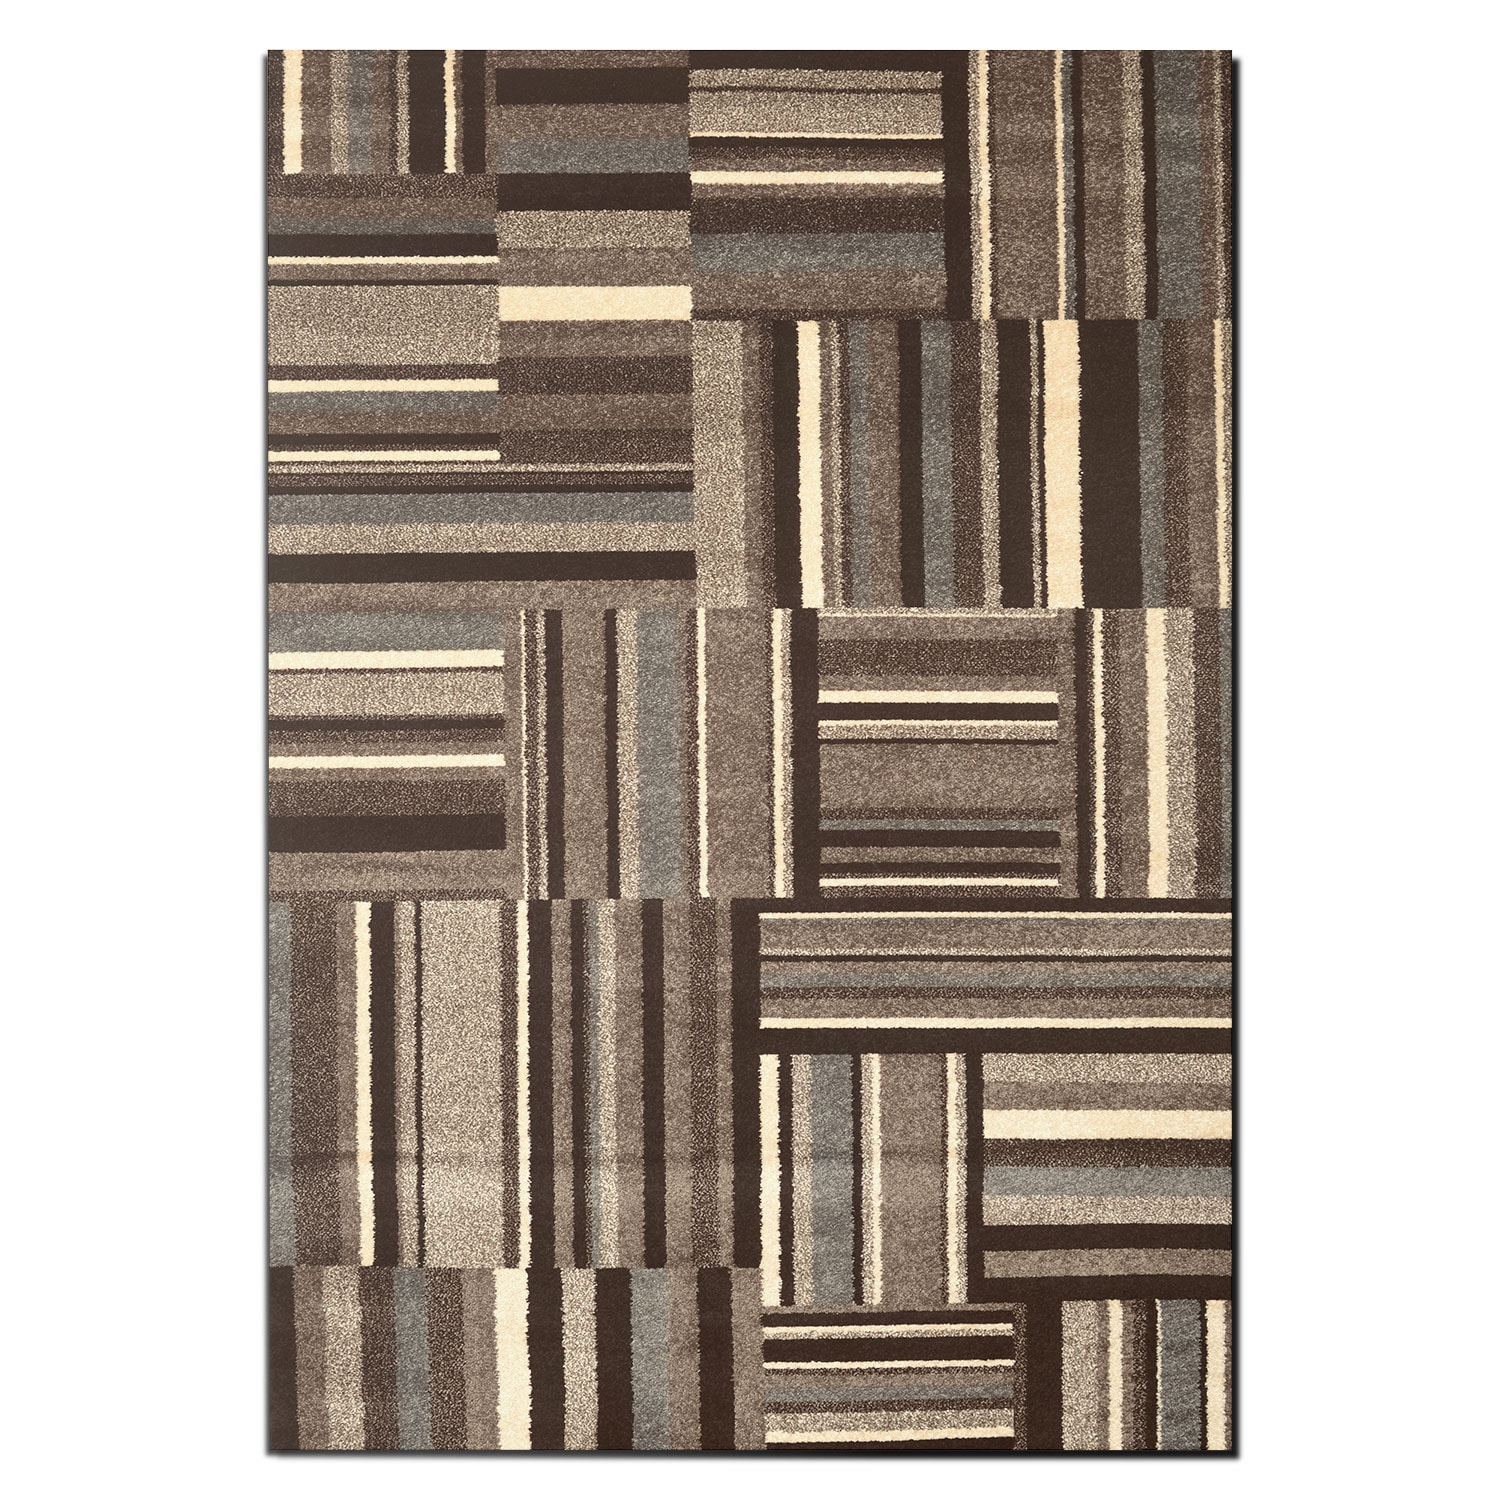 Ava 5' x 8' Area Rug - Gray and Cream